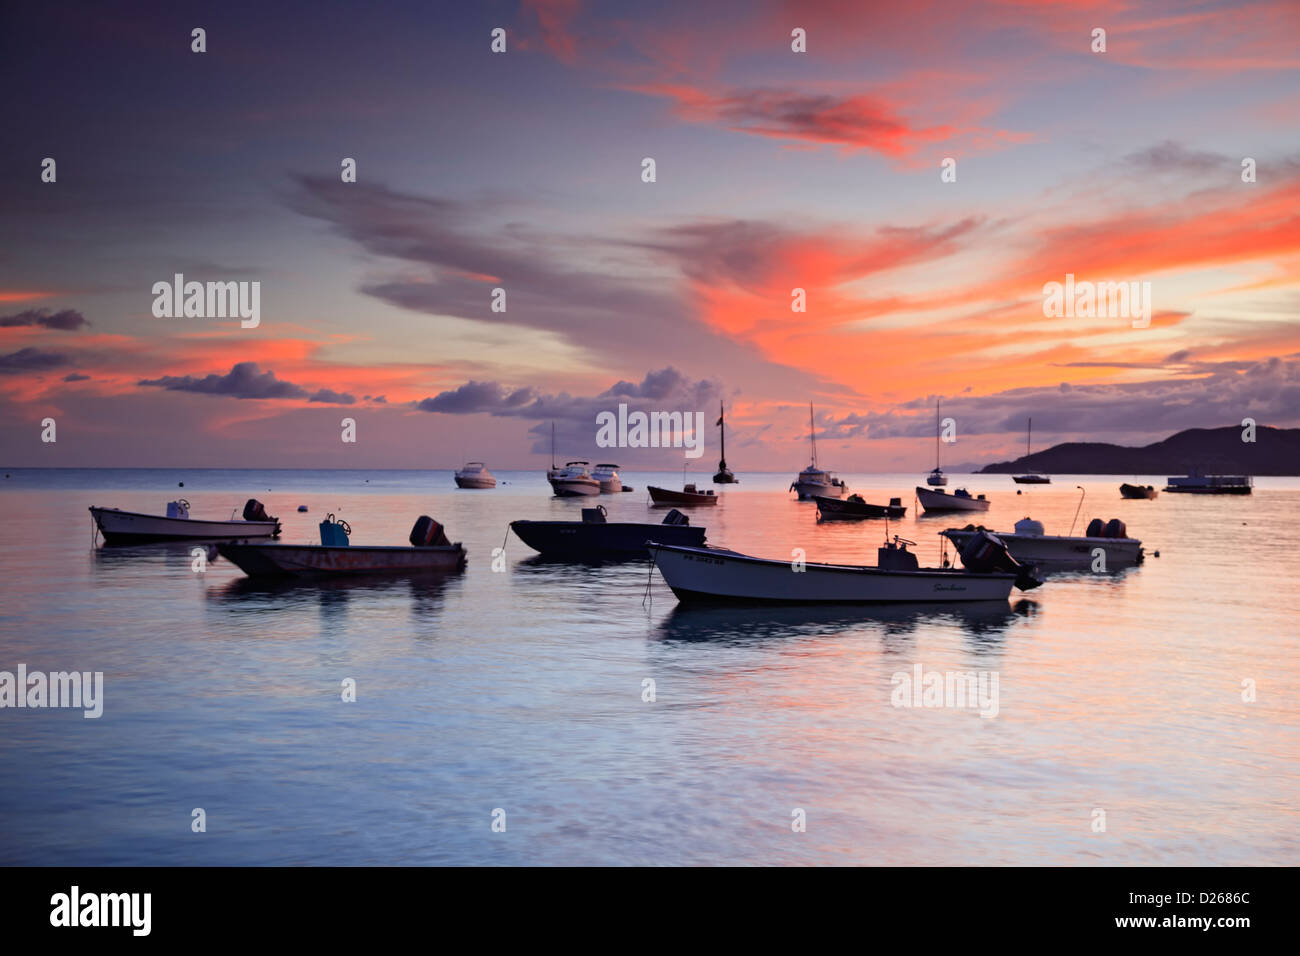 Fishing boats at sunset, Esperanza, Vieques, Puerto Rico - Stock Image